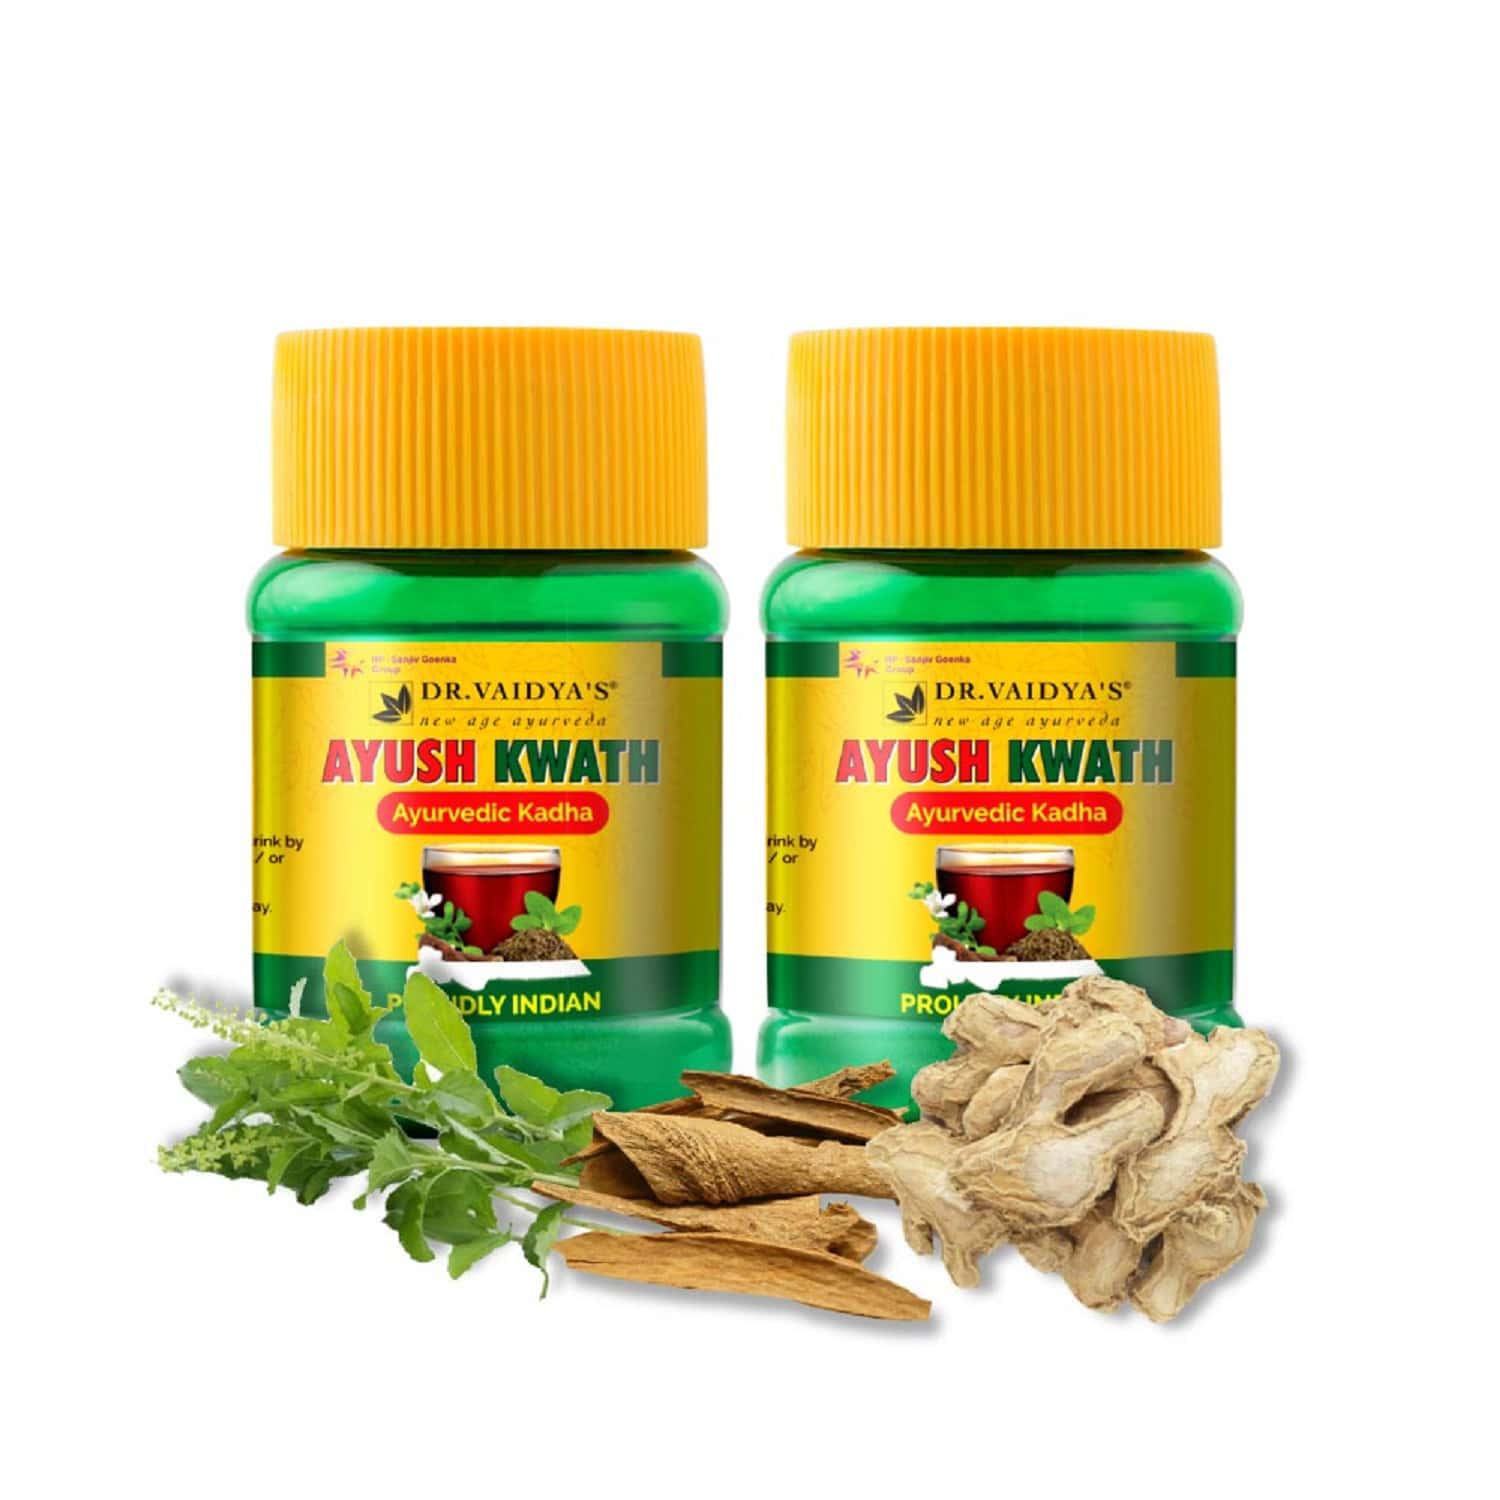 Dr. Vaidya's Ayush Kwath | Ayurvedic Immunity Boosting Kadha Powder | 50 Gms Each (pack Of 2)